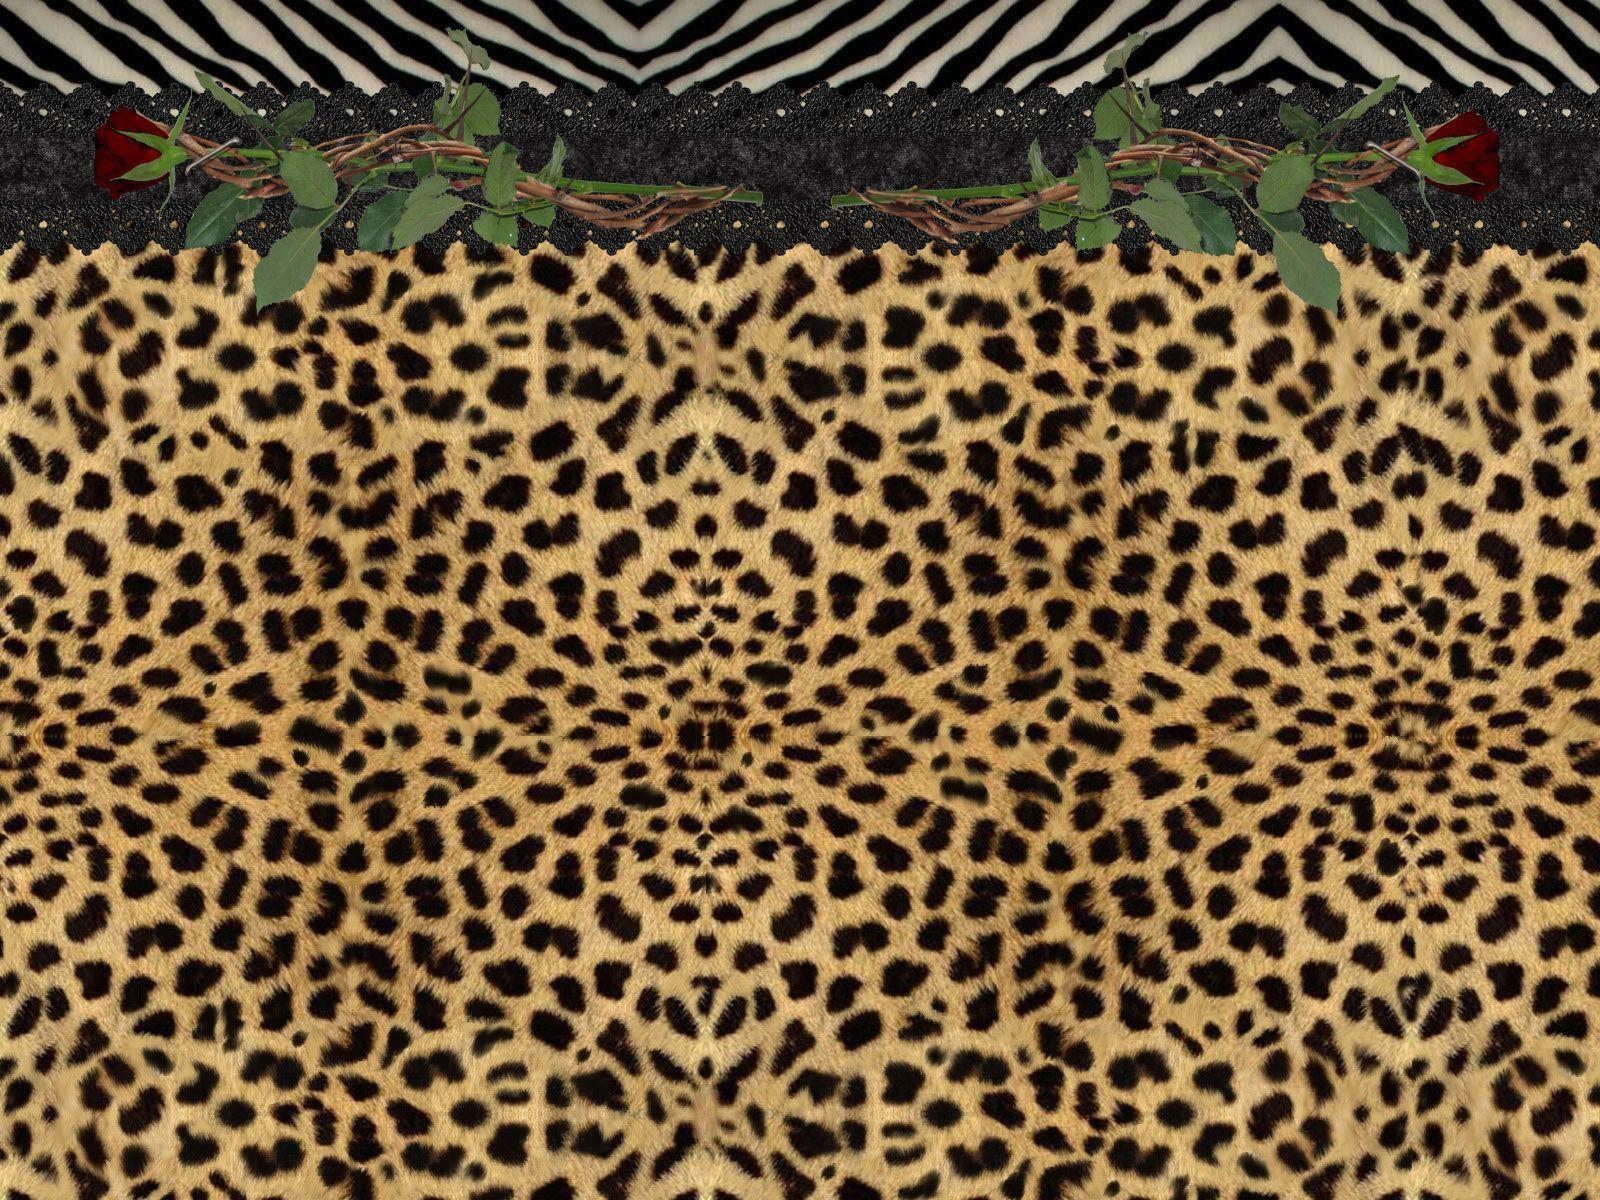 cheetah backgrounds image wallpaper cave